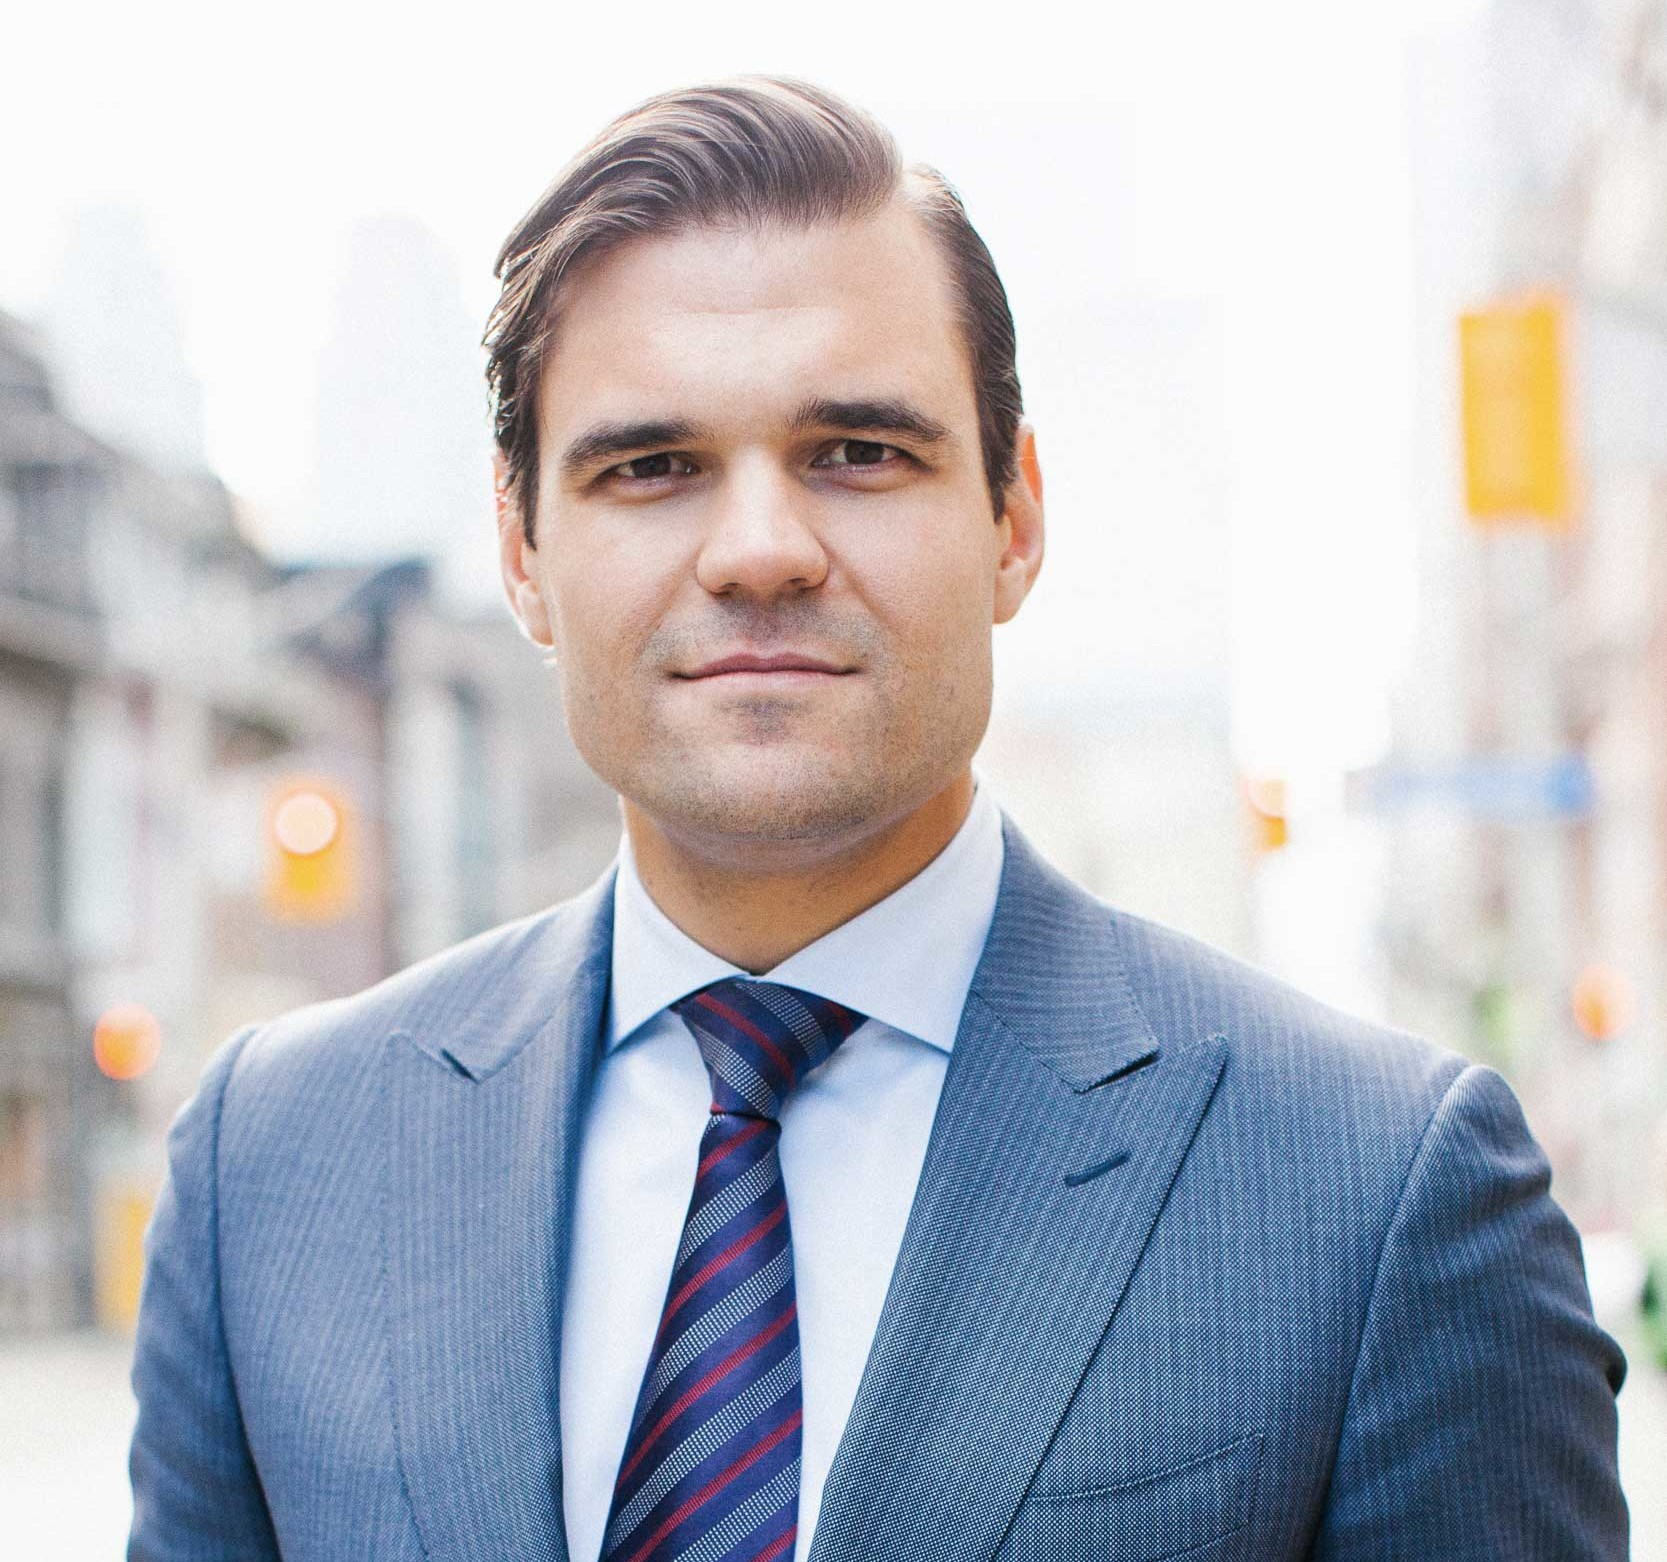 Alex Tapscott, co-author